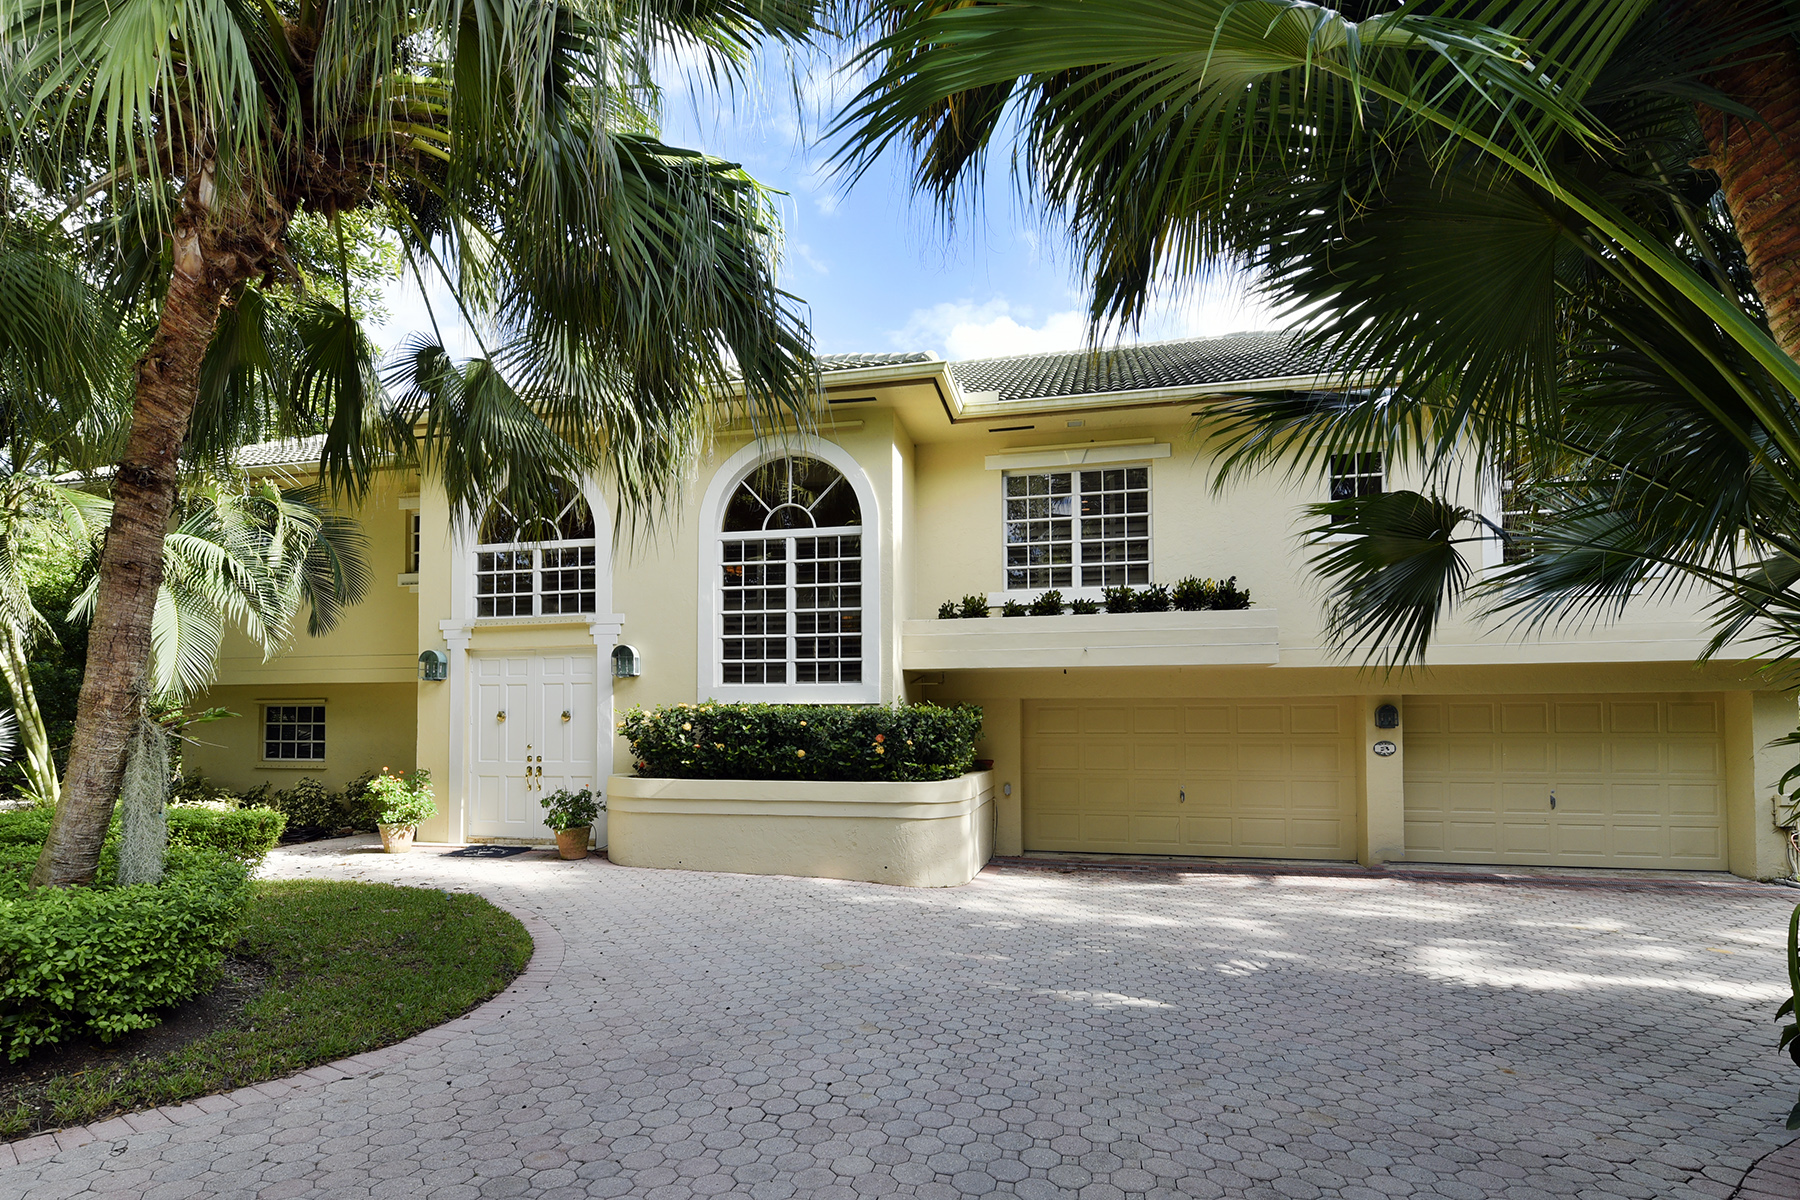 Single Family Home for Sale at Charming Golf Course Home at Ocean Reef 3 Bayberry Lane Key Largo, Florida, 33037 United States